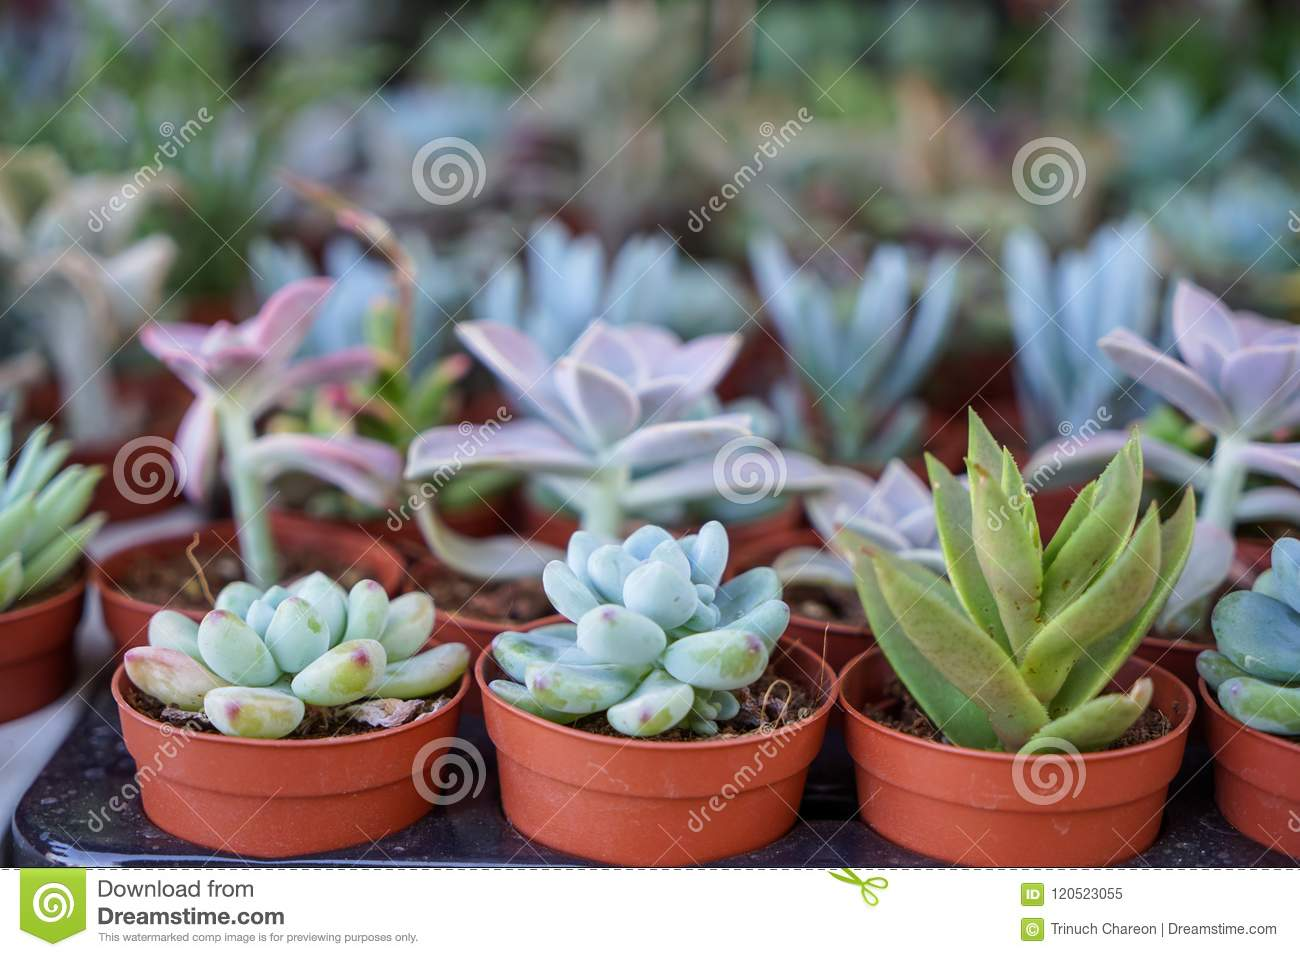 Varieties of green hen and chicks, succulent plant, in brown pot with blurred background selling in local market, selective focus